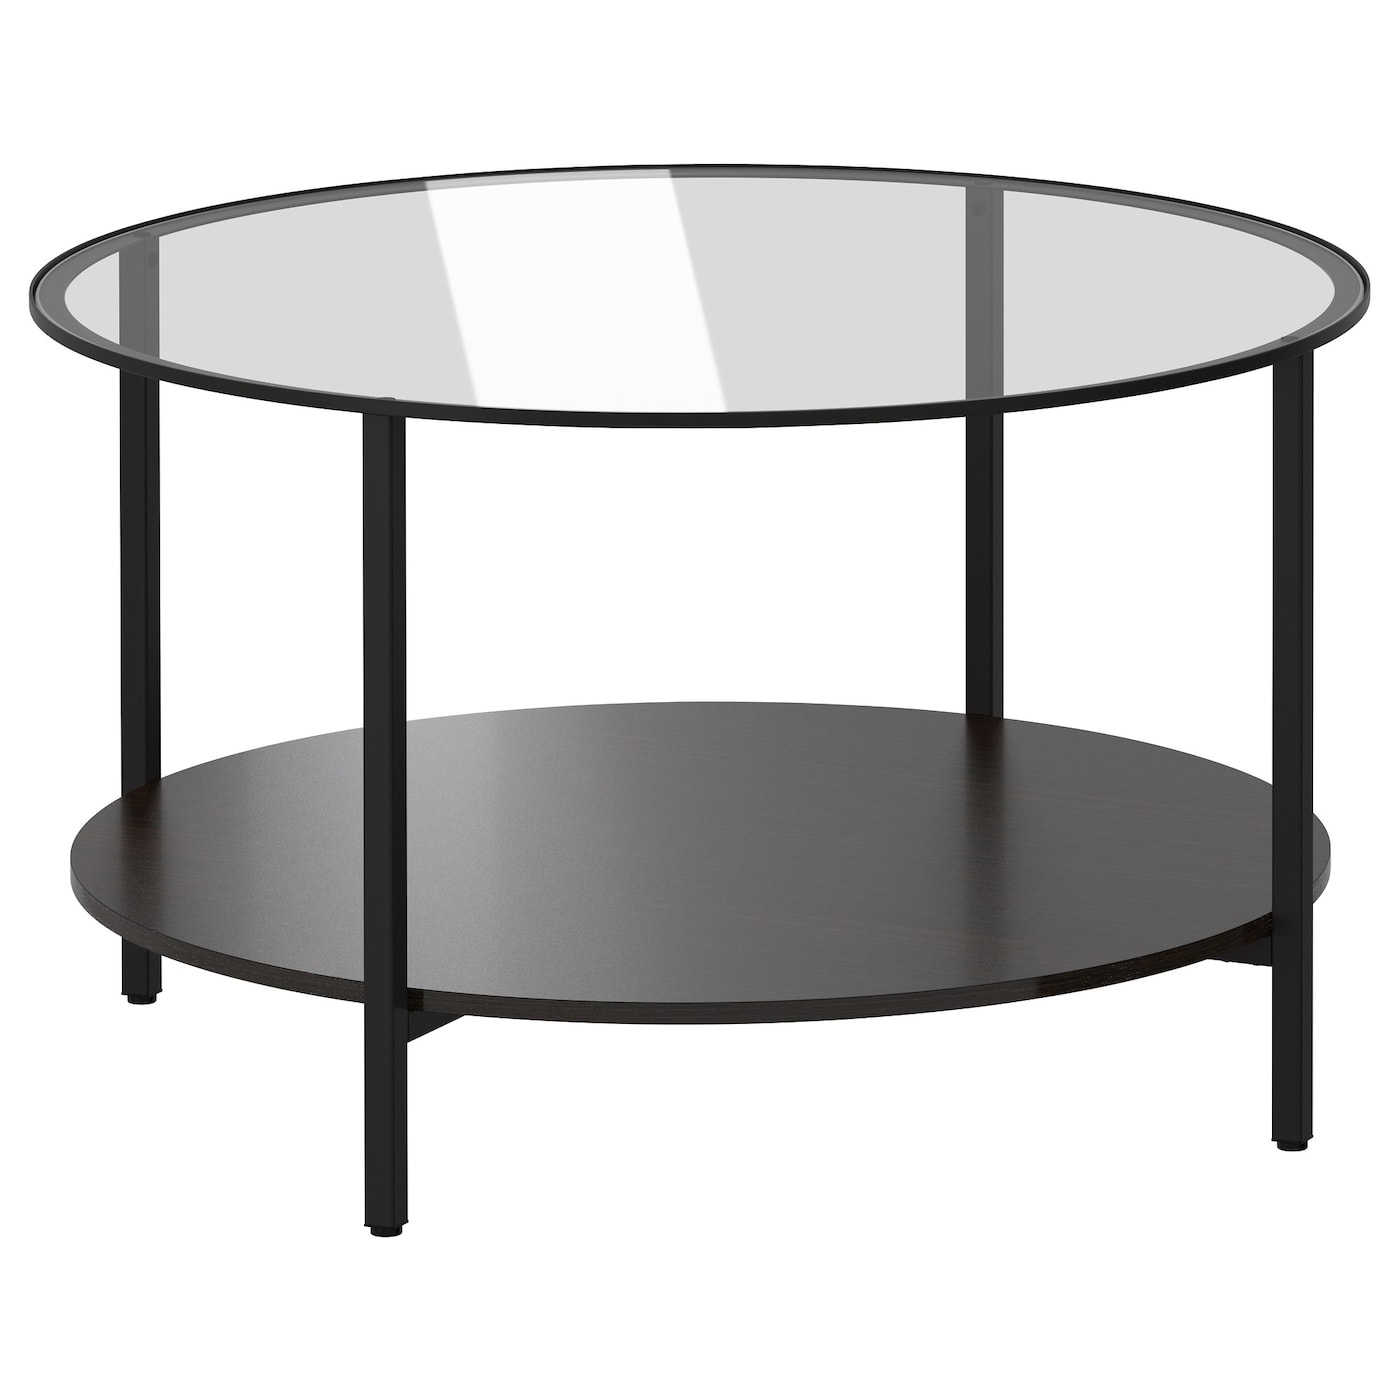 vittsj coffee table black brown glass 75 cm ikea. Black Bedroom Furniture Sets. Home Design Ideas